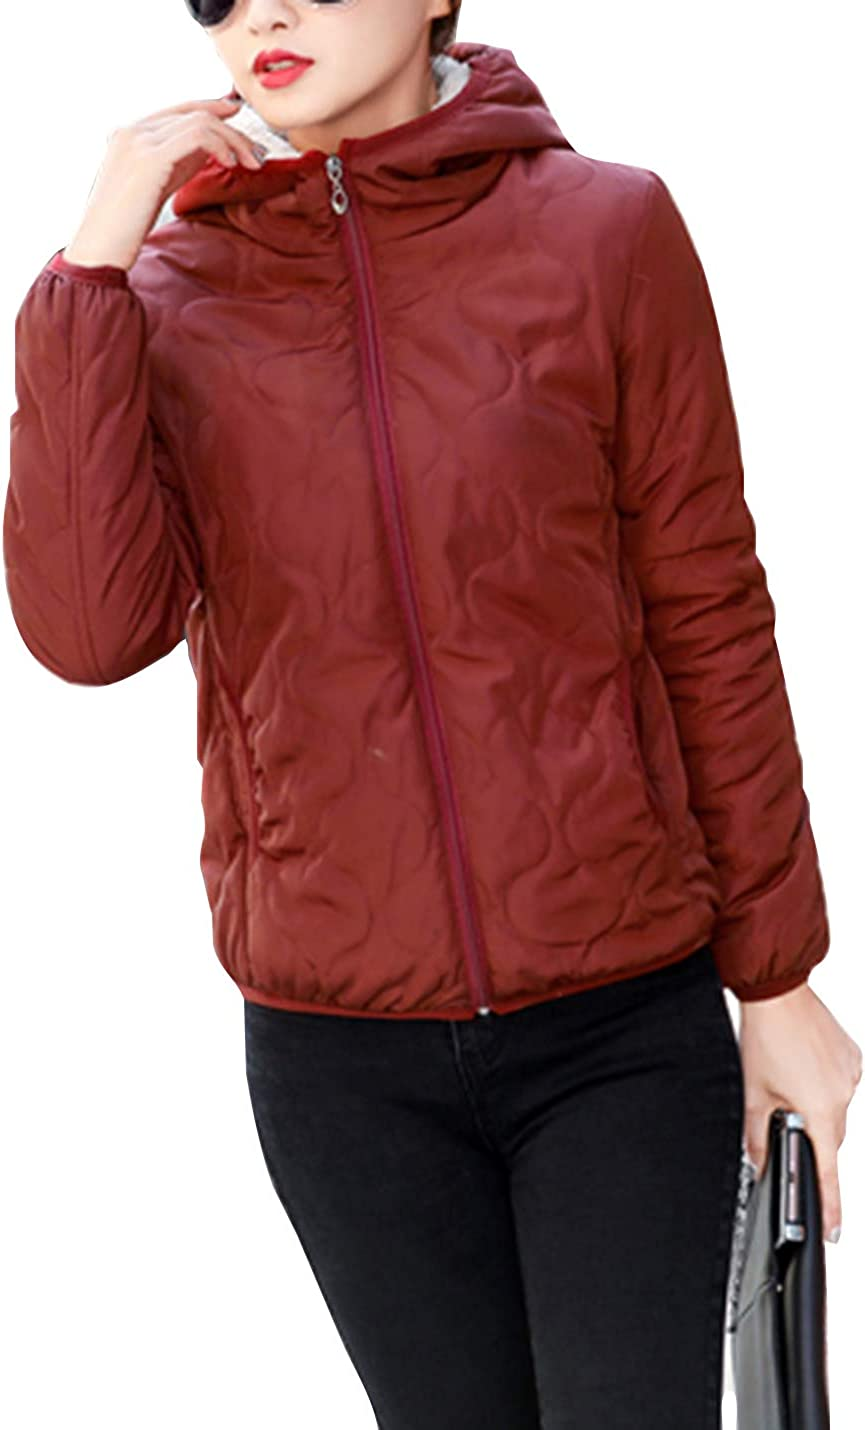 Lentta Womens Casual Thick Fleece Lined Puffy Quilted Winter Coats Warm Hoodie Parkas